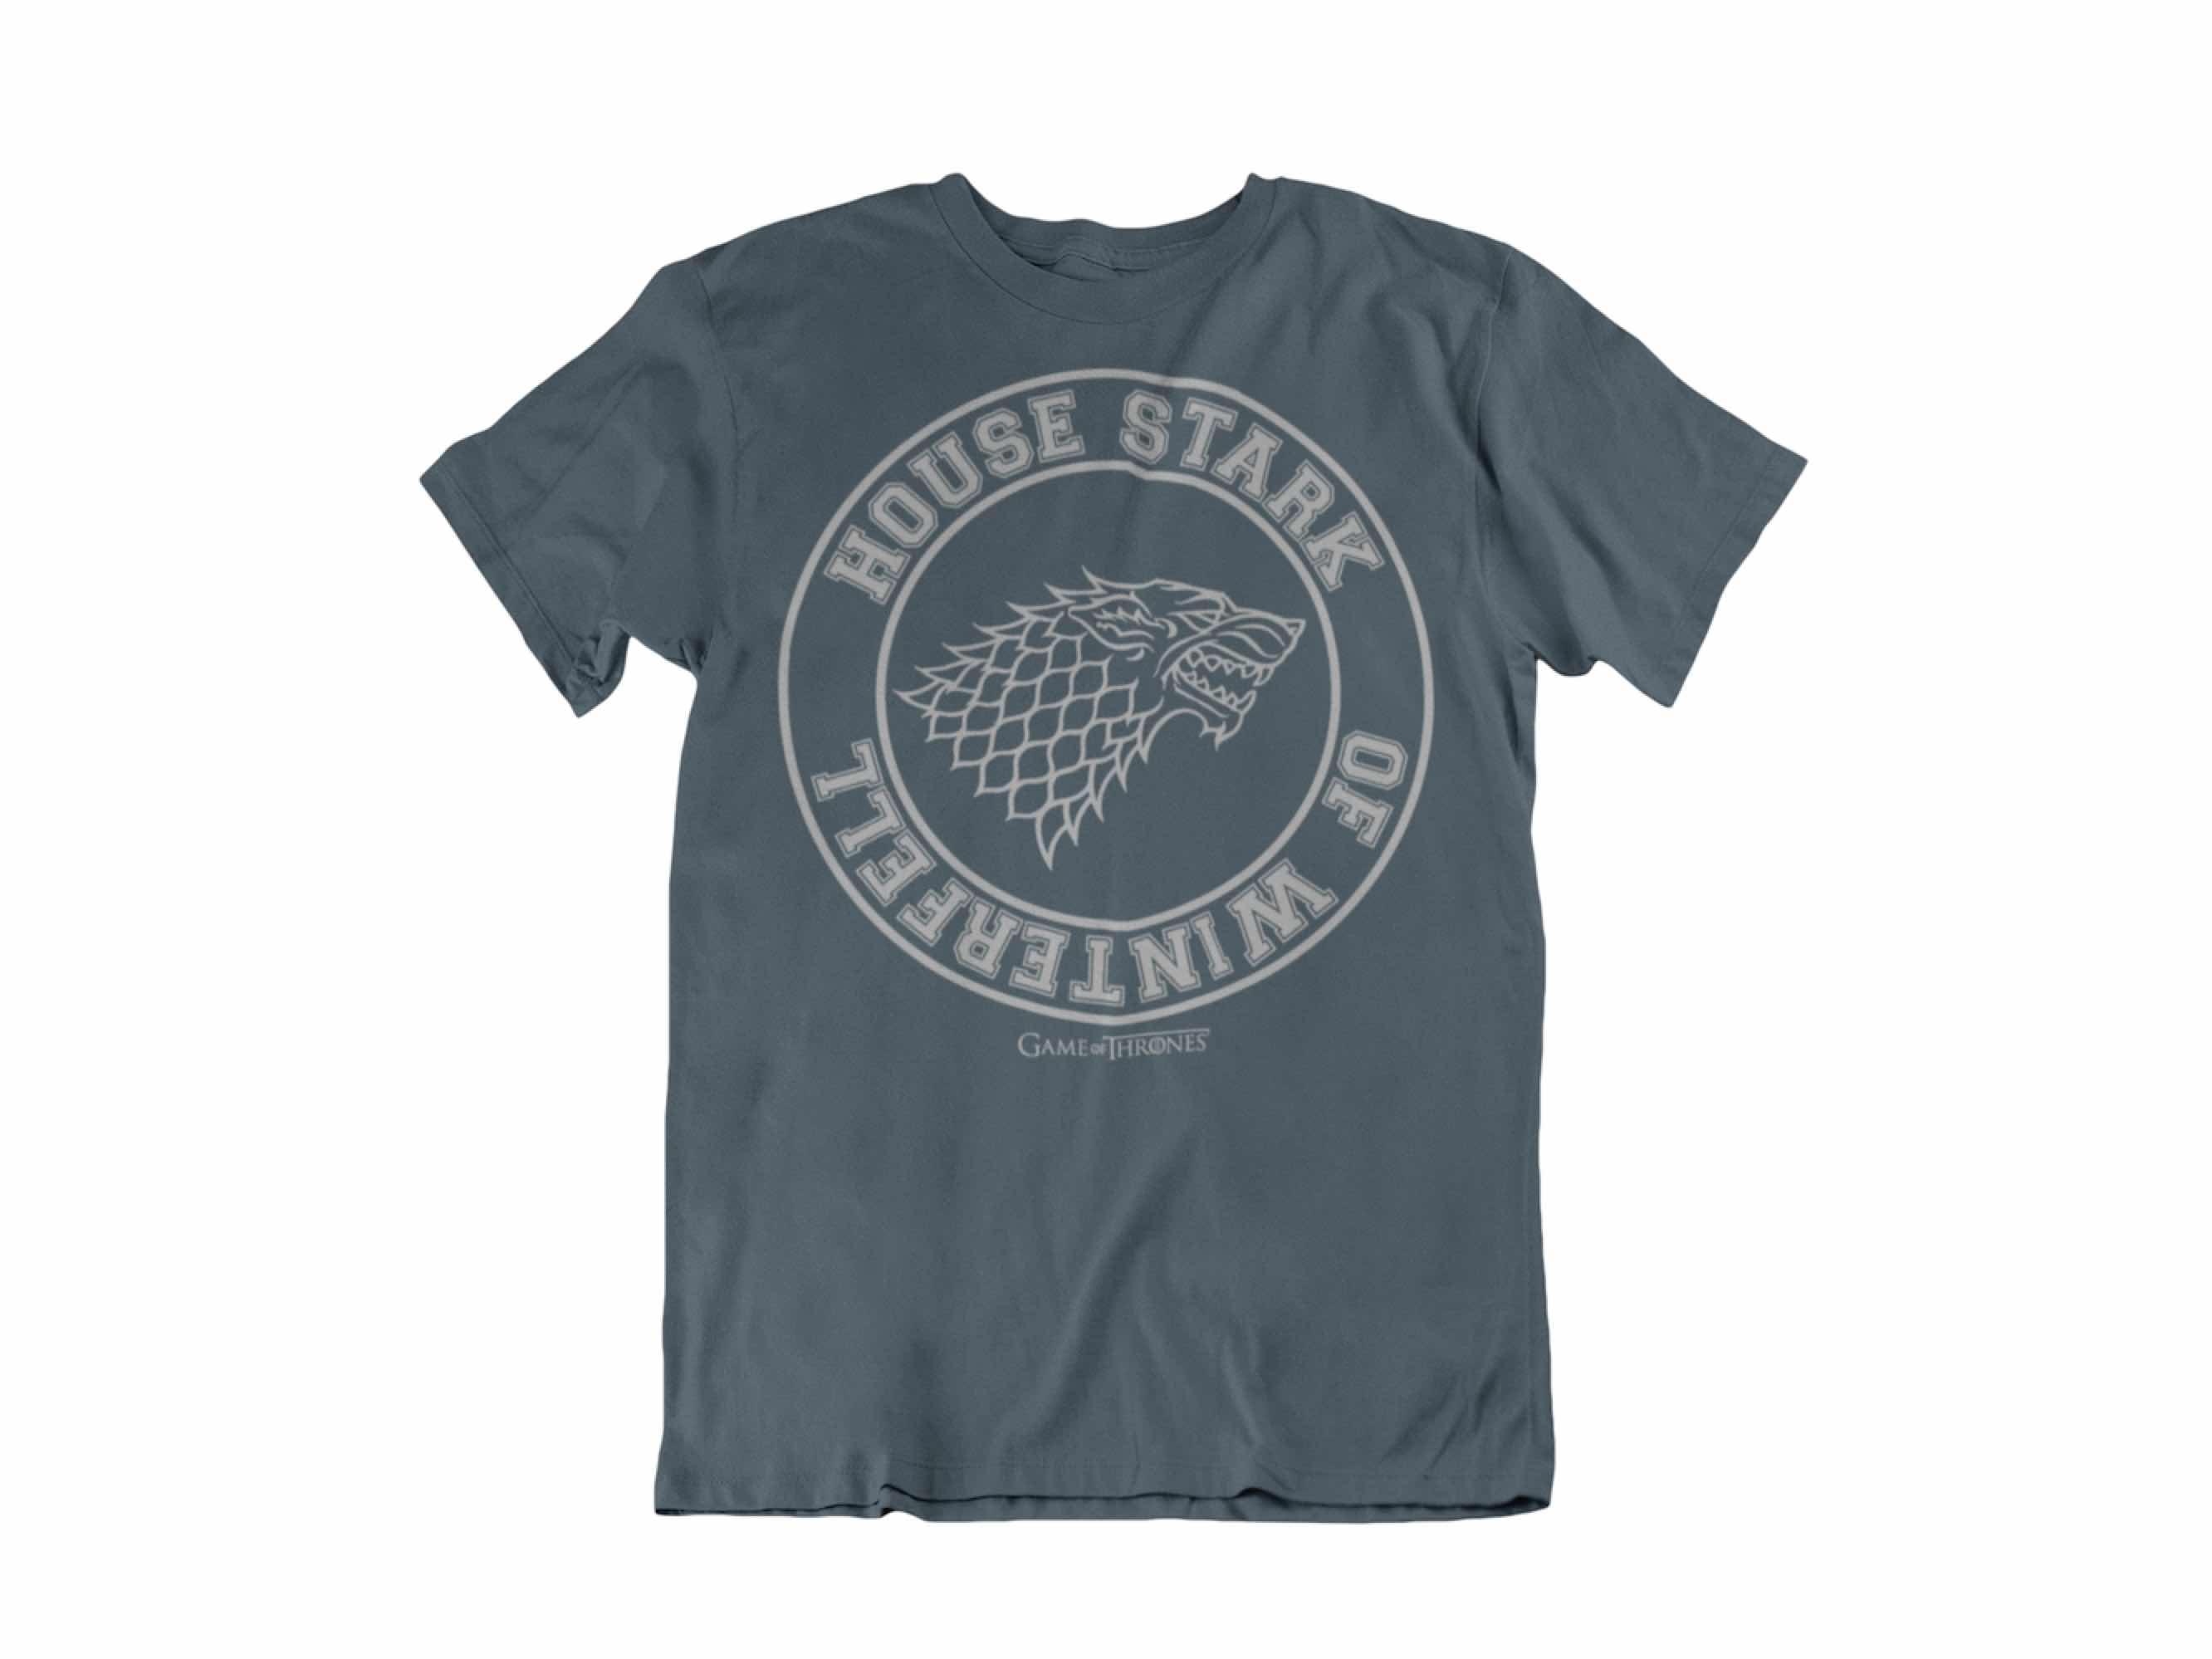 CAMISETA HOUSE STARK OF WINTERFELL UNISEX TALLA M GAME OF THRONES